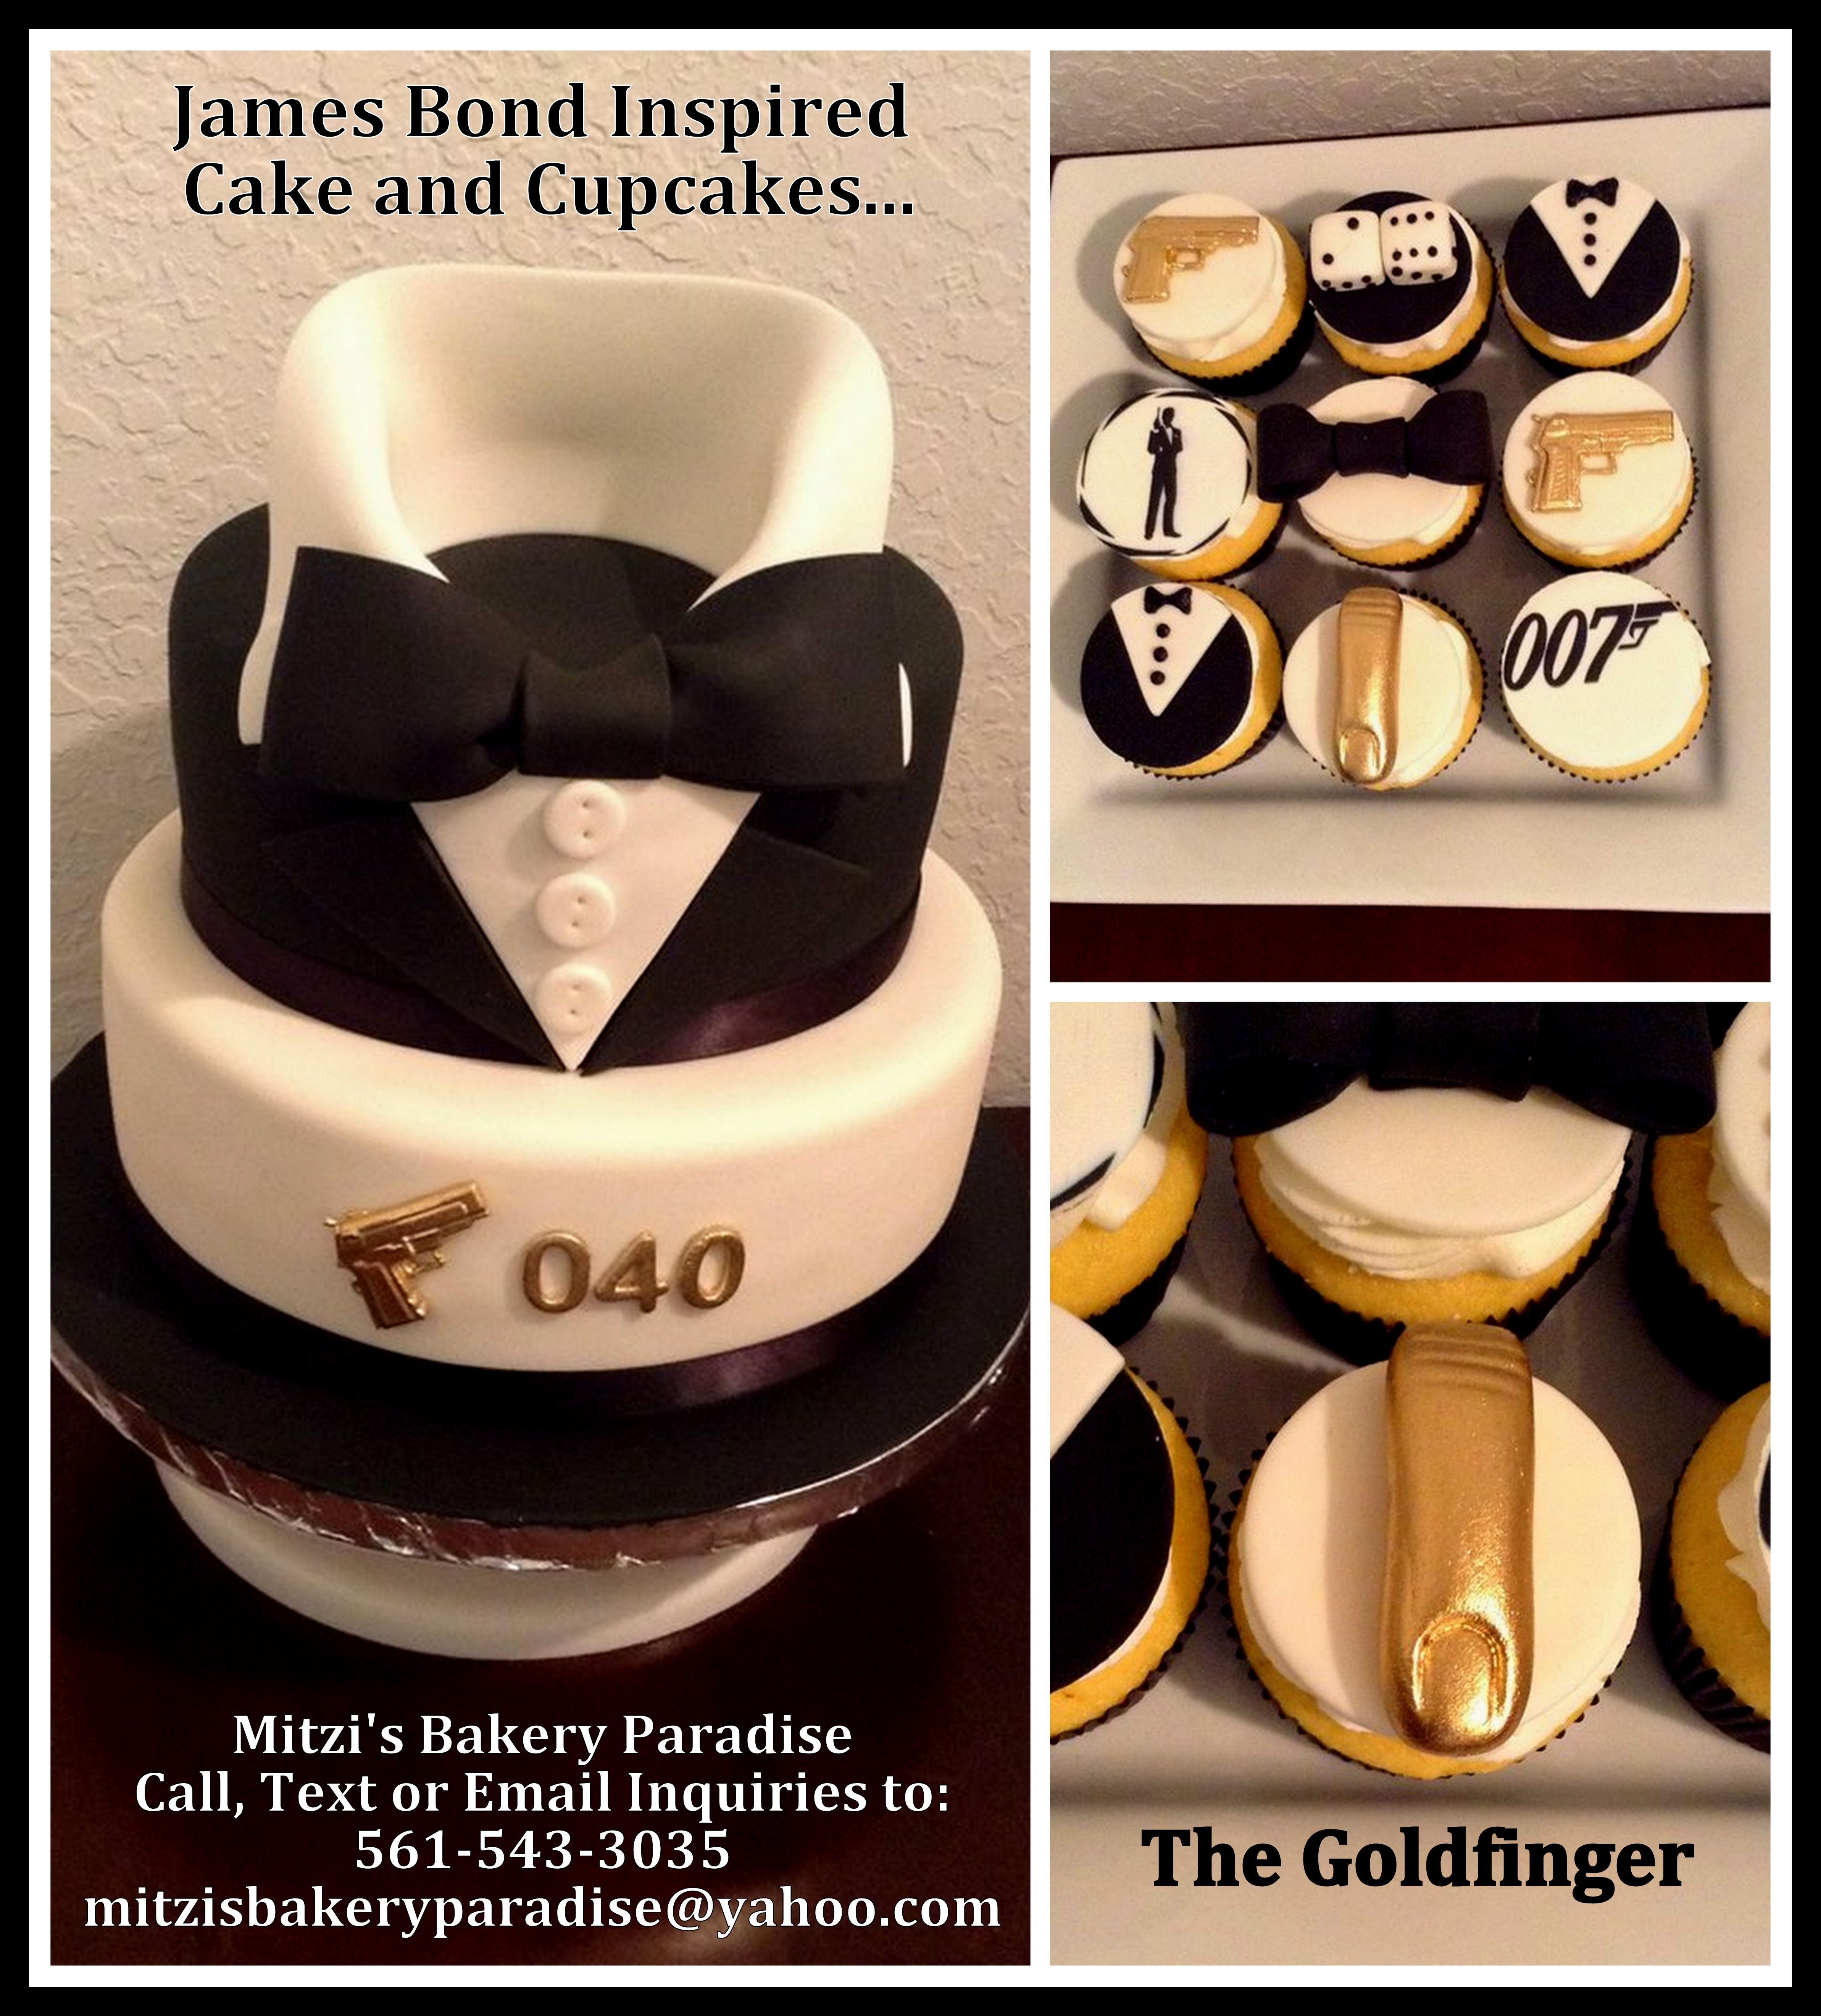 James Bond Inspired Cake and Cupcakes...